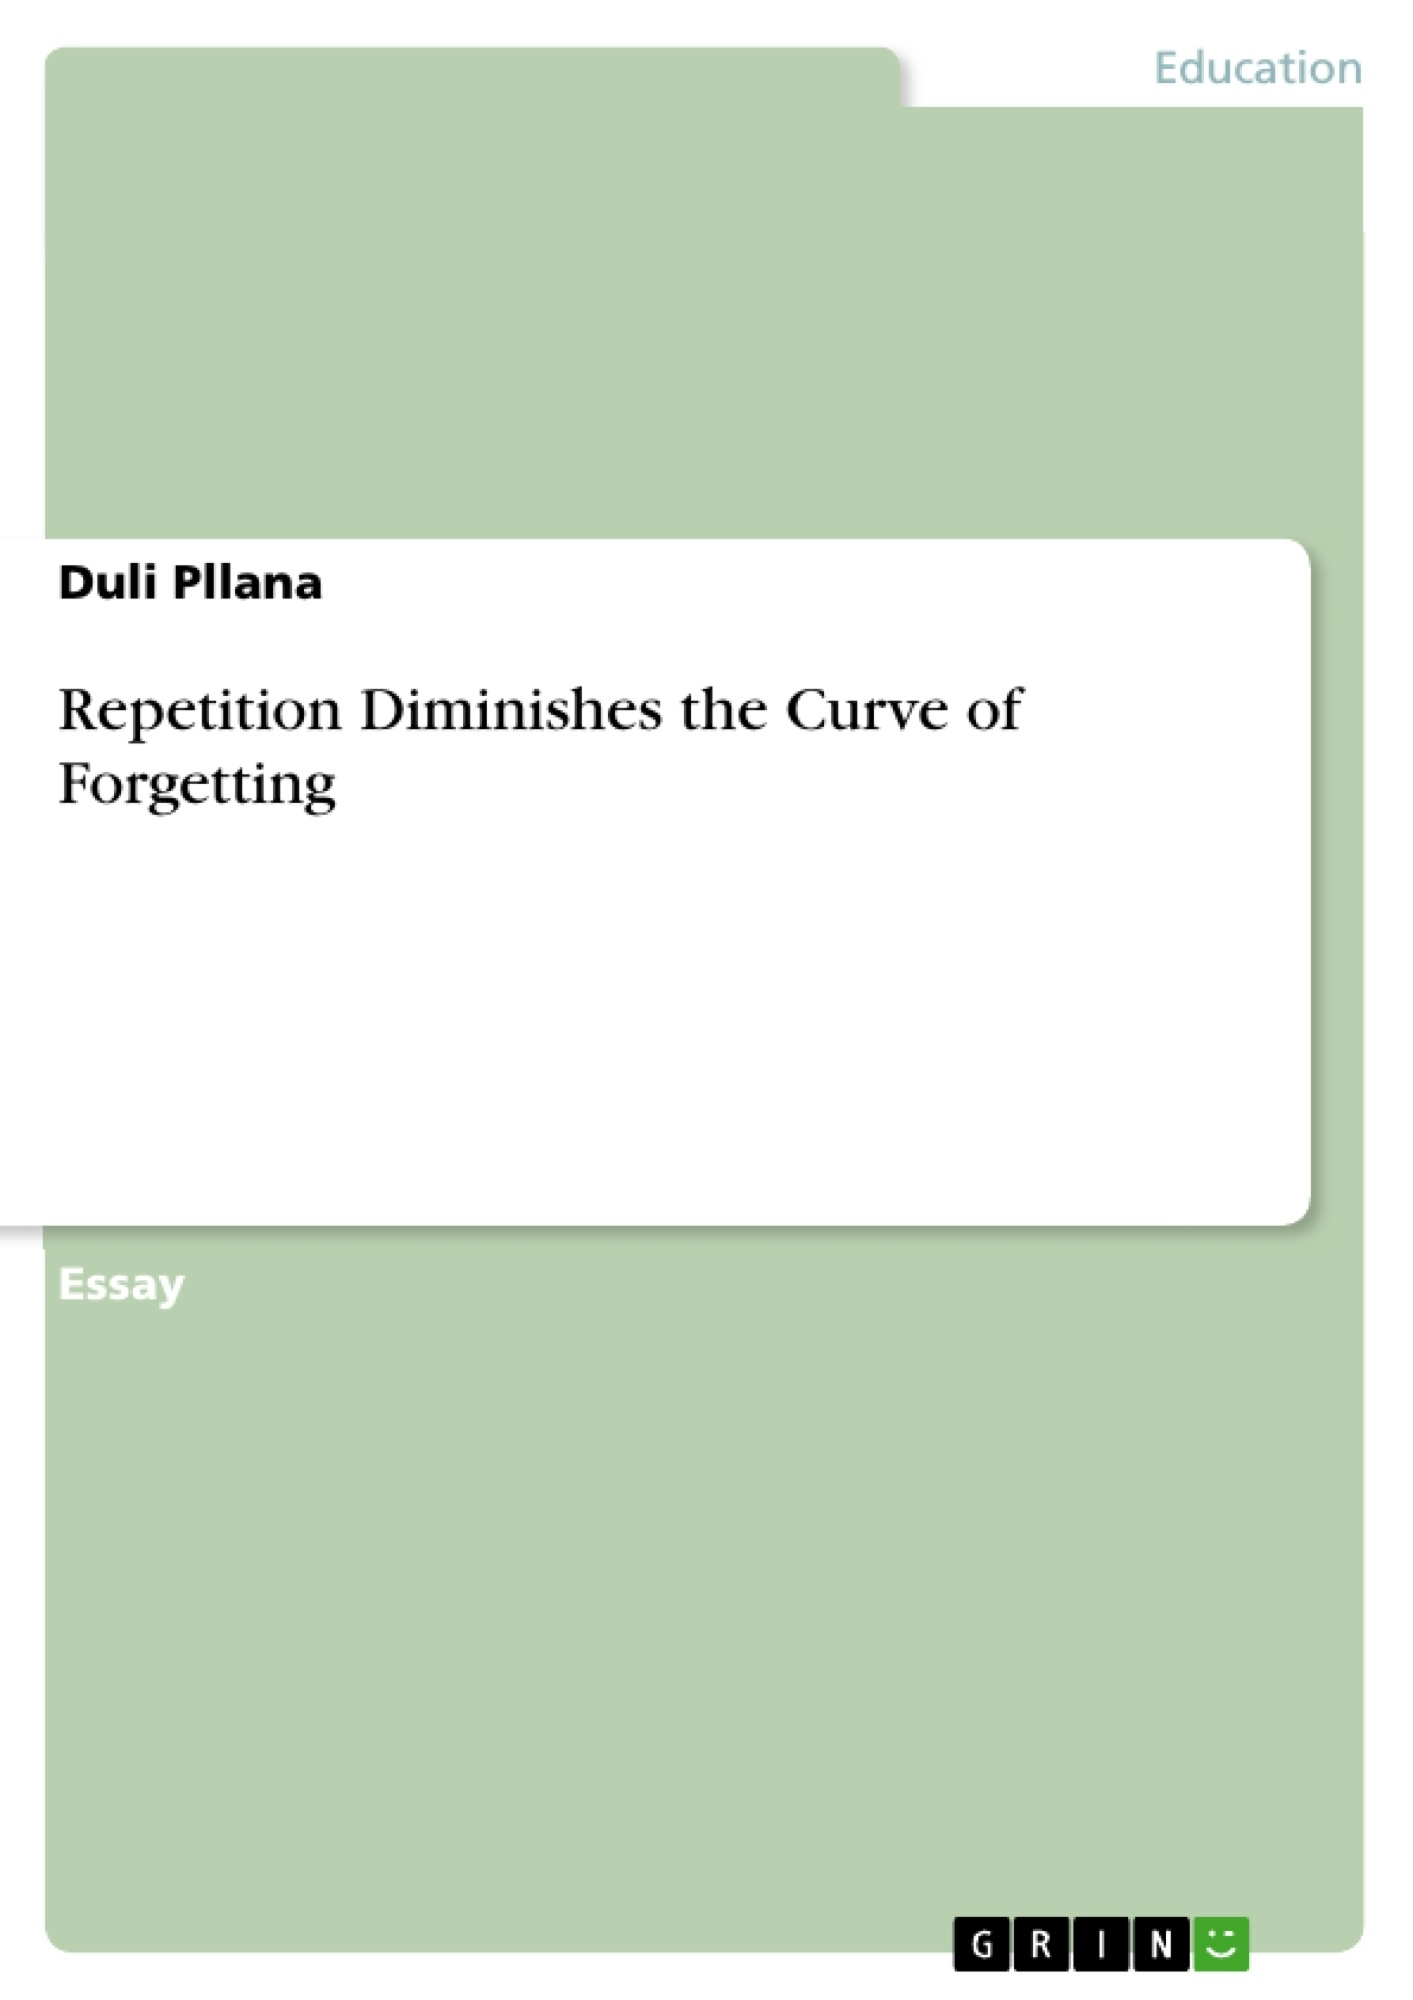 Title: Repetition Diminishes the Curve of Forgetting